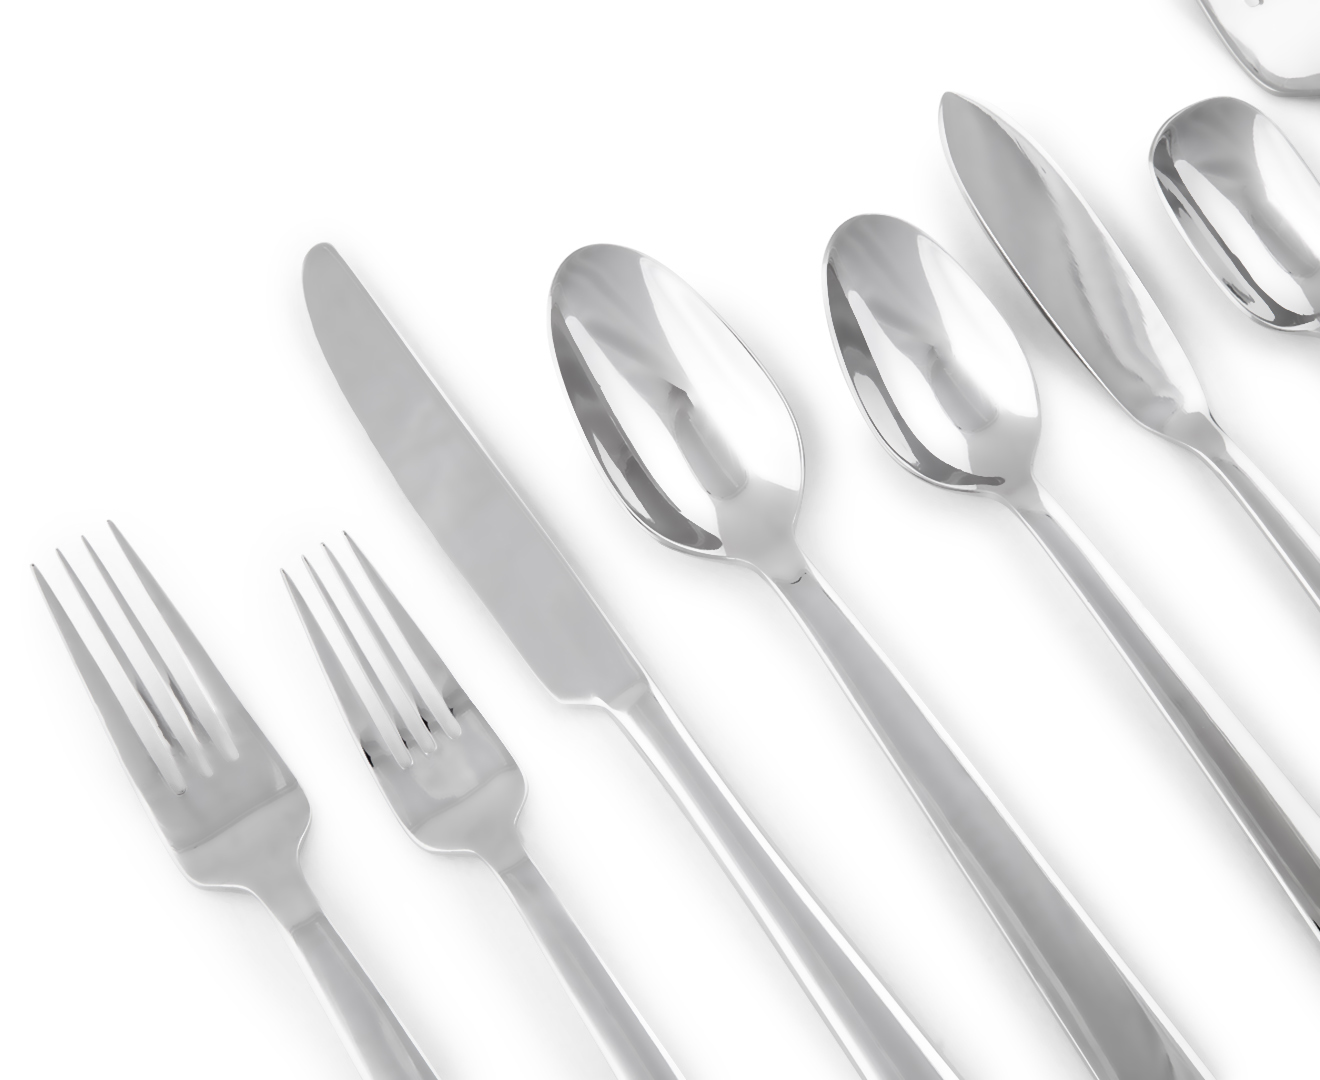 High Quality Cutlery Sets Oneida 45 Piece Madison High Quality 18 Cutlery Set